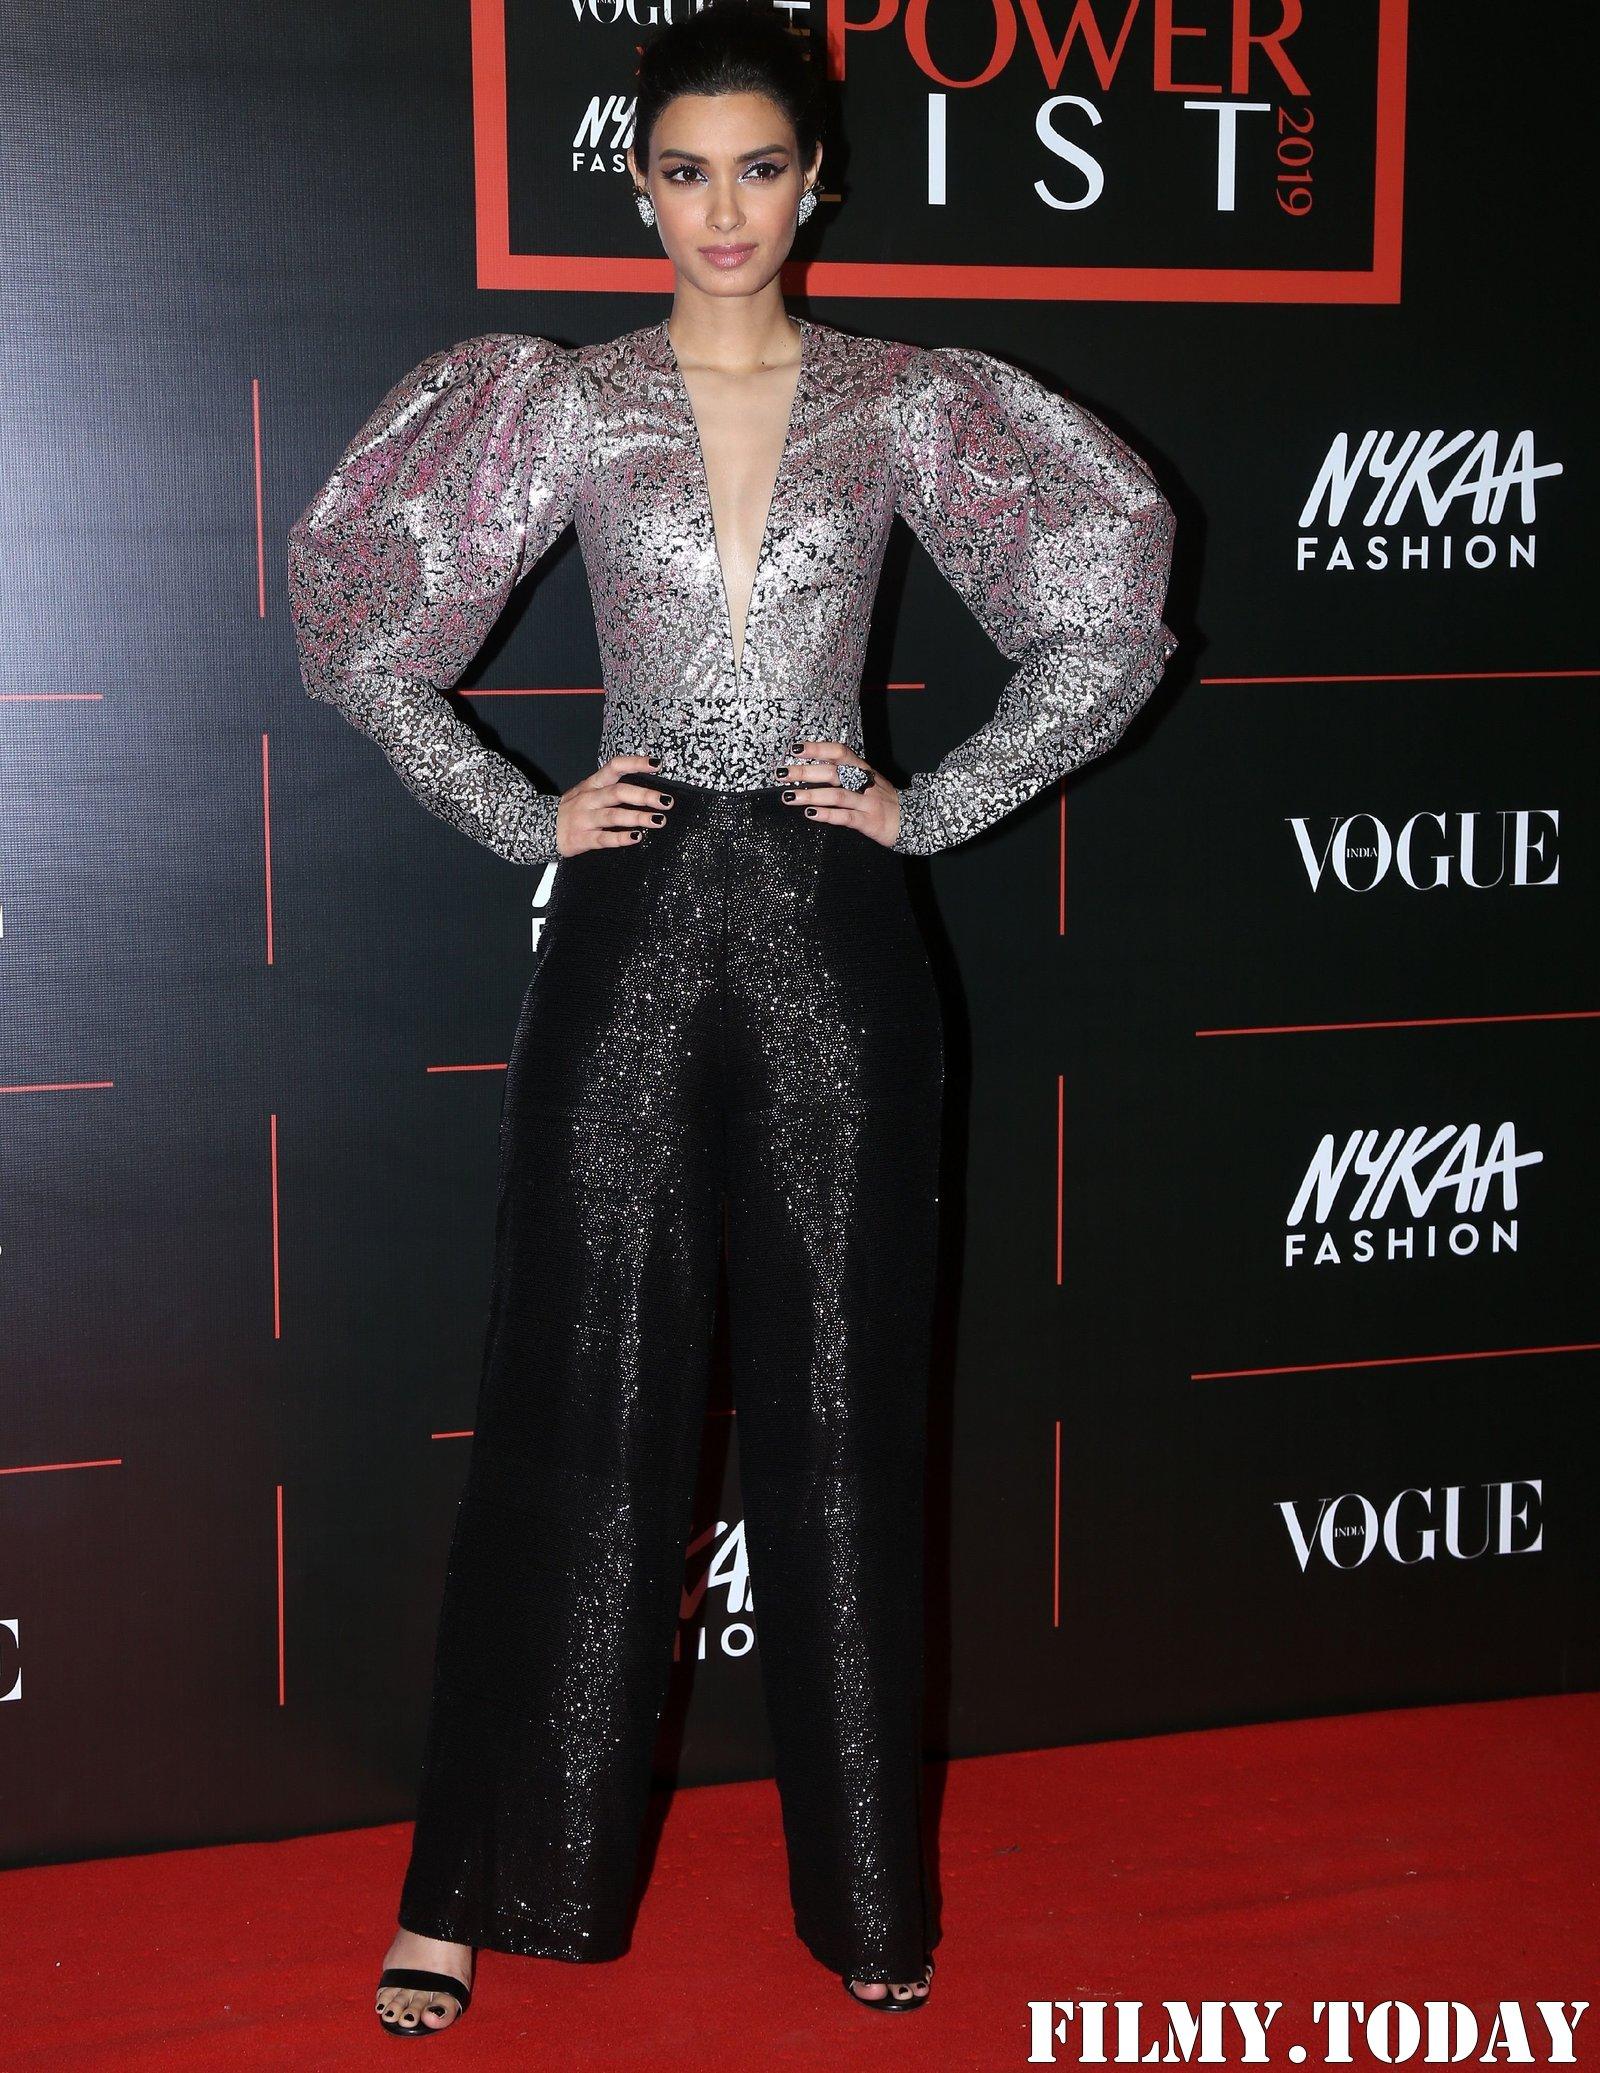 Diana Penty - Photos: Celebs At Vogue The Power List 2019 At St Regis Hotel | Picture 1706330